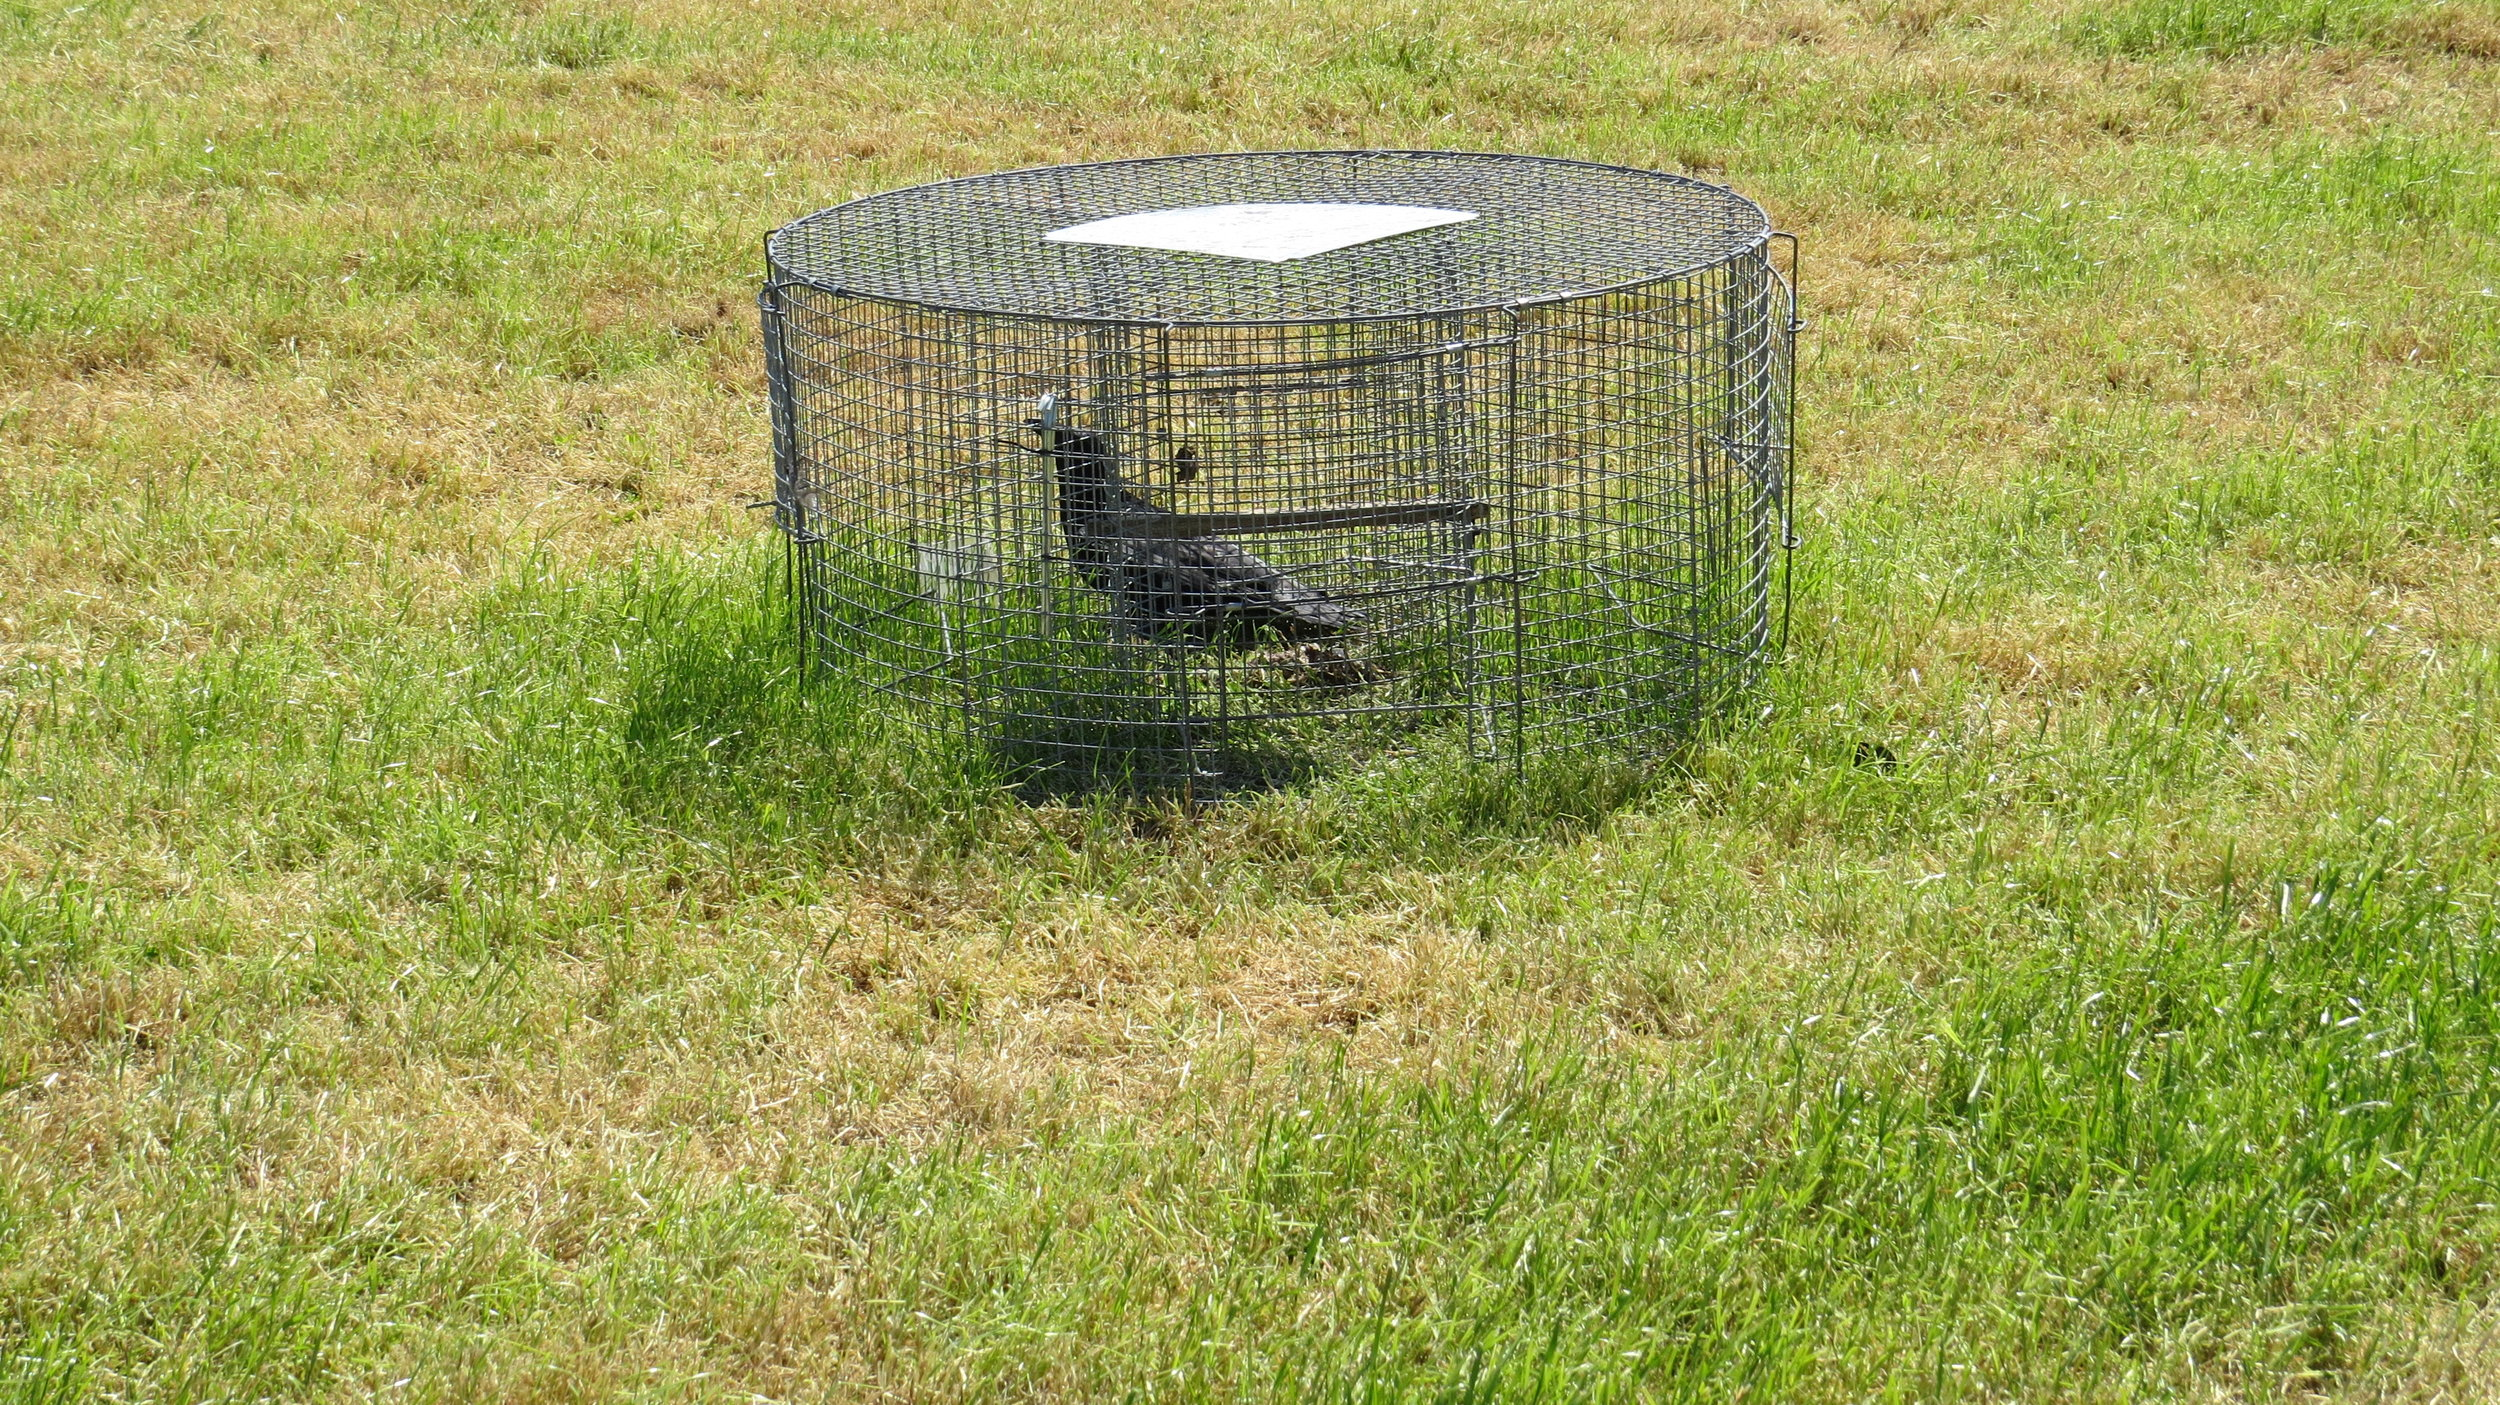 Cruel Corvid Trap (using live bird which was overheating to attract others into trap)